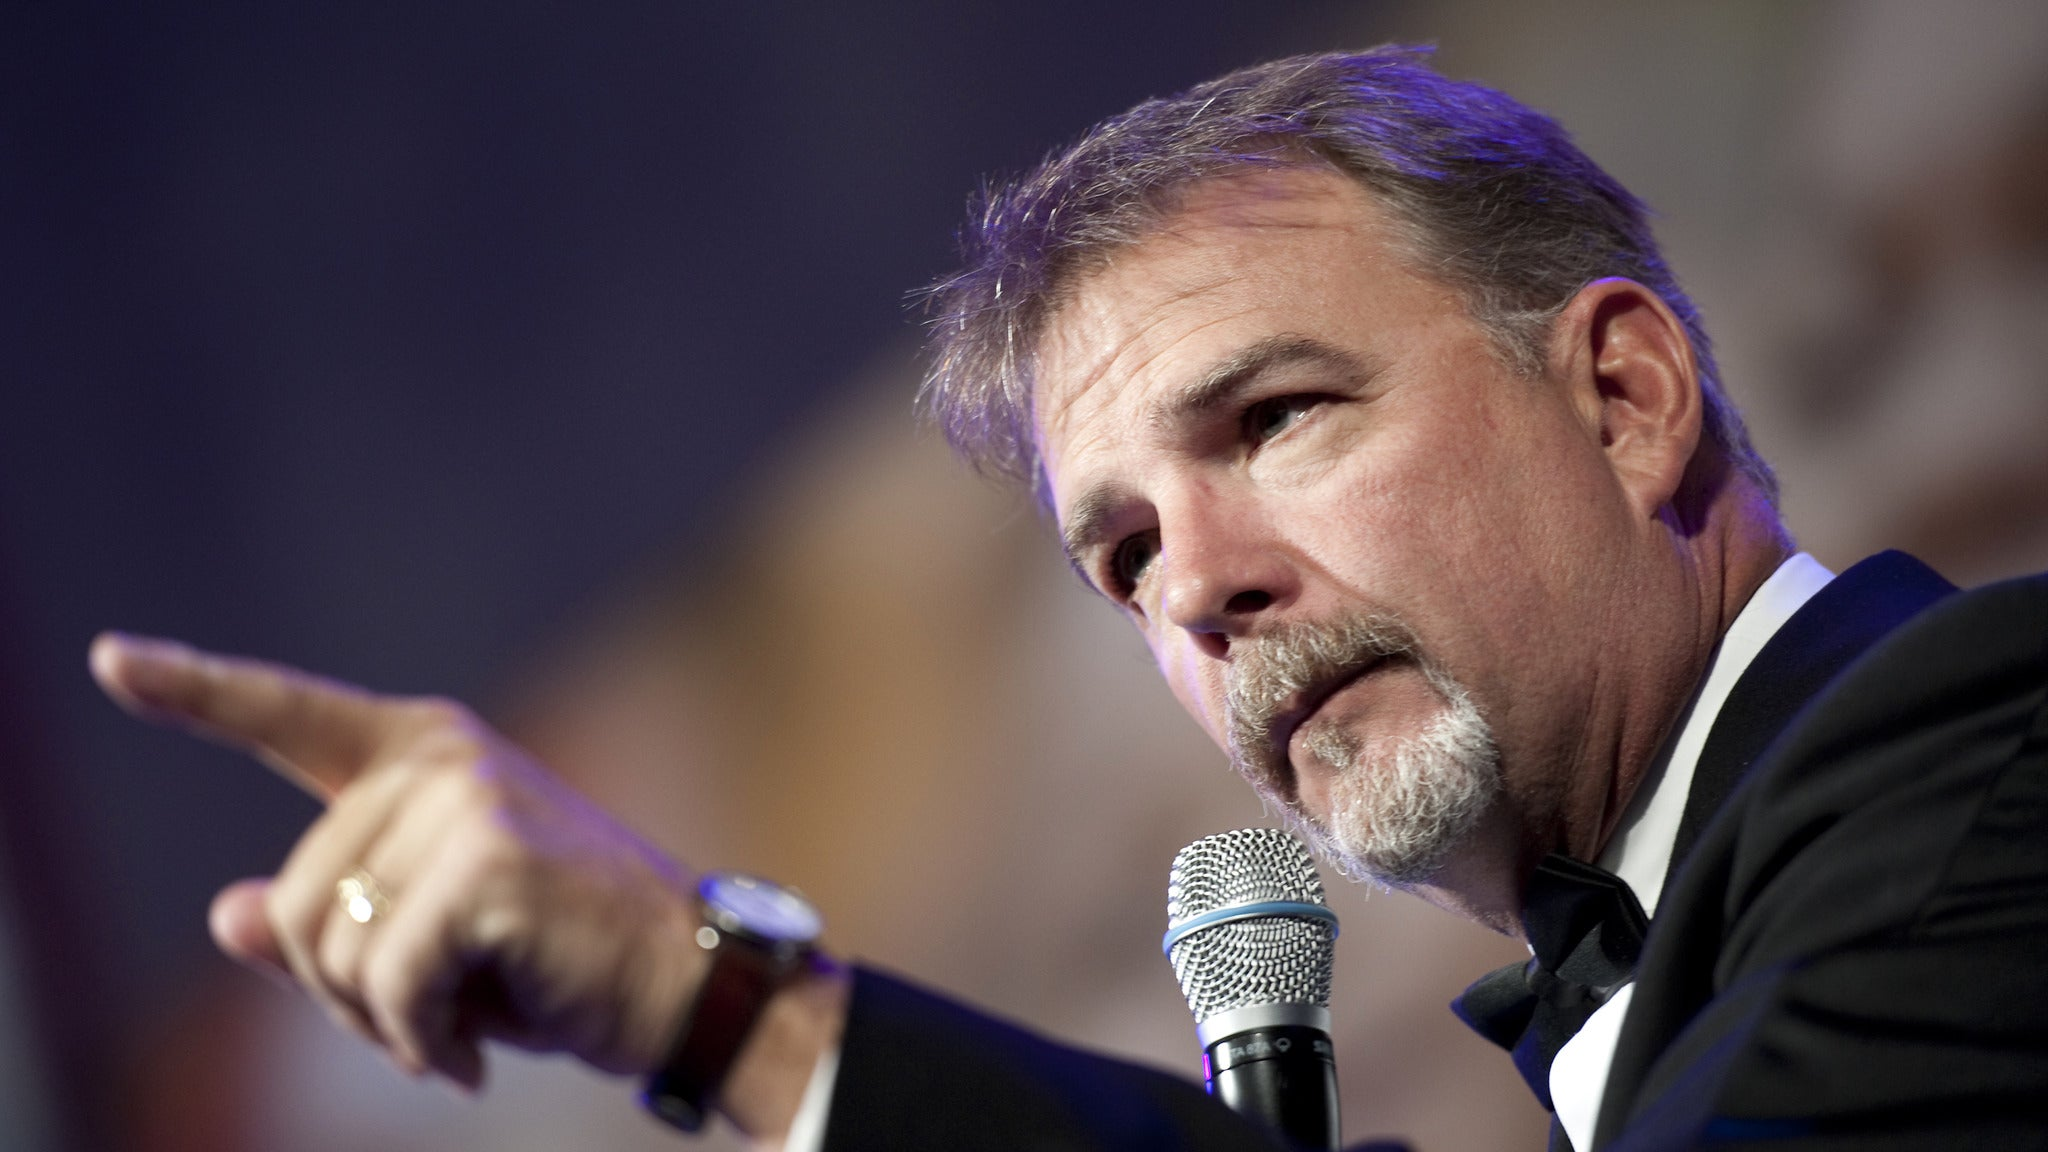 Bill Engvall at Gallo Center for the Arts